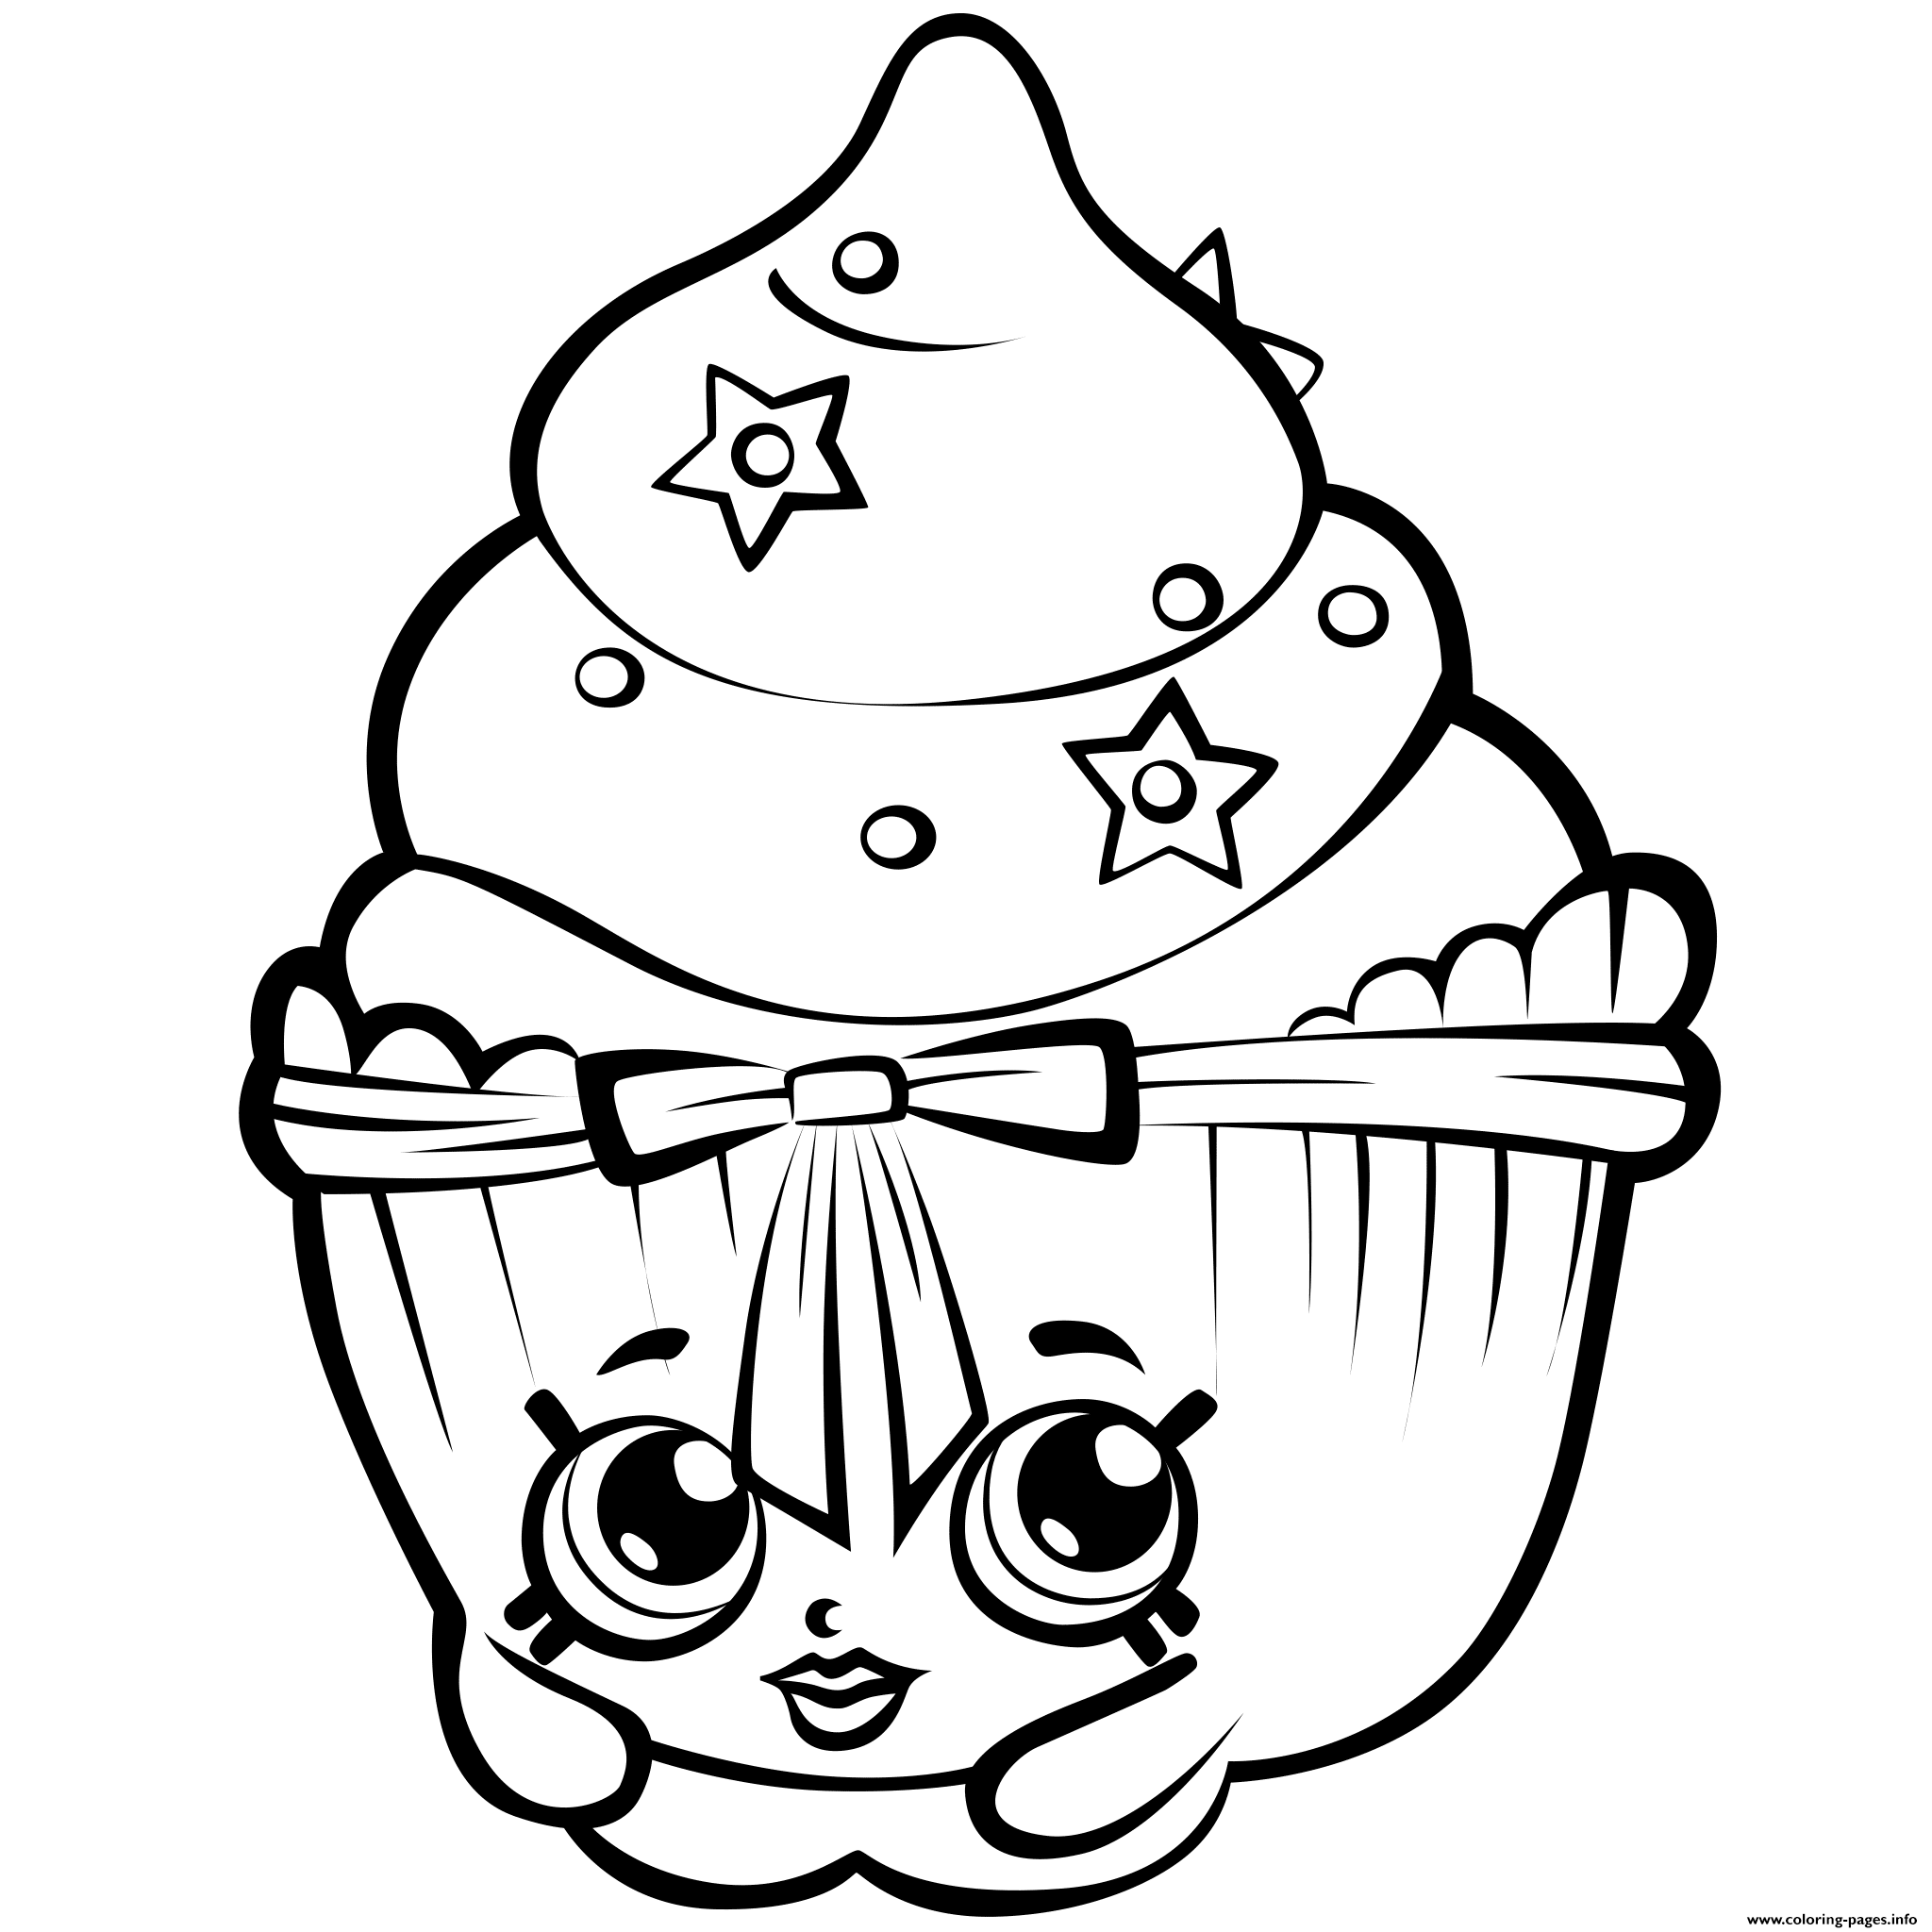 It is a picture of Geeky Printable Shopkin Coloring Pages